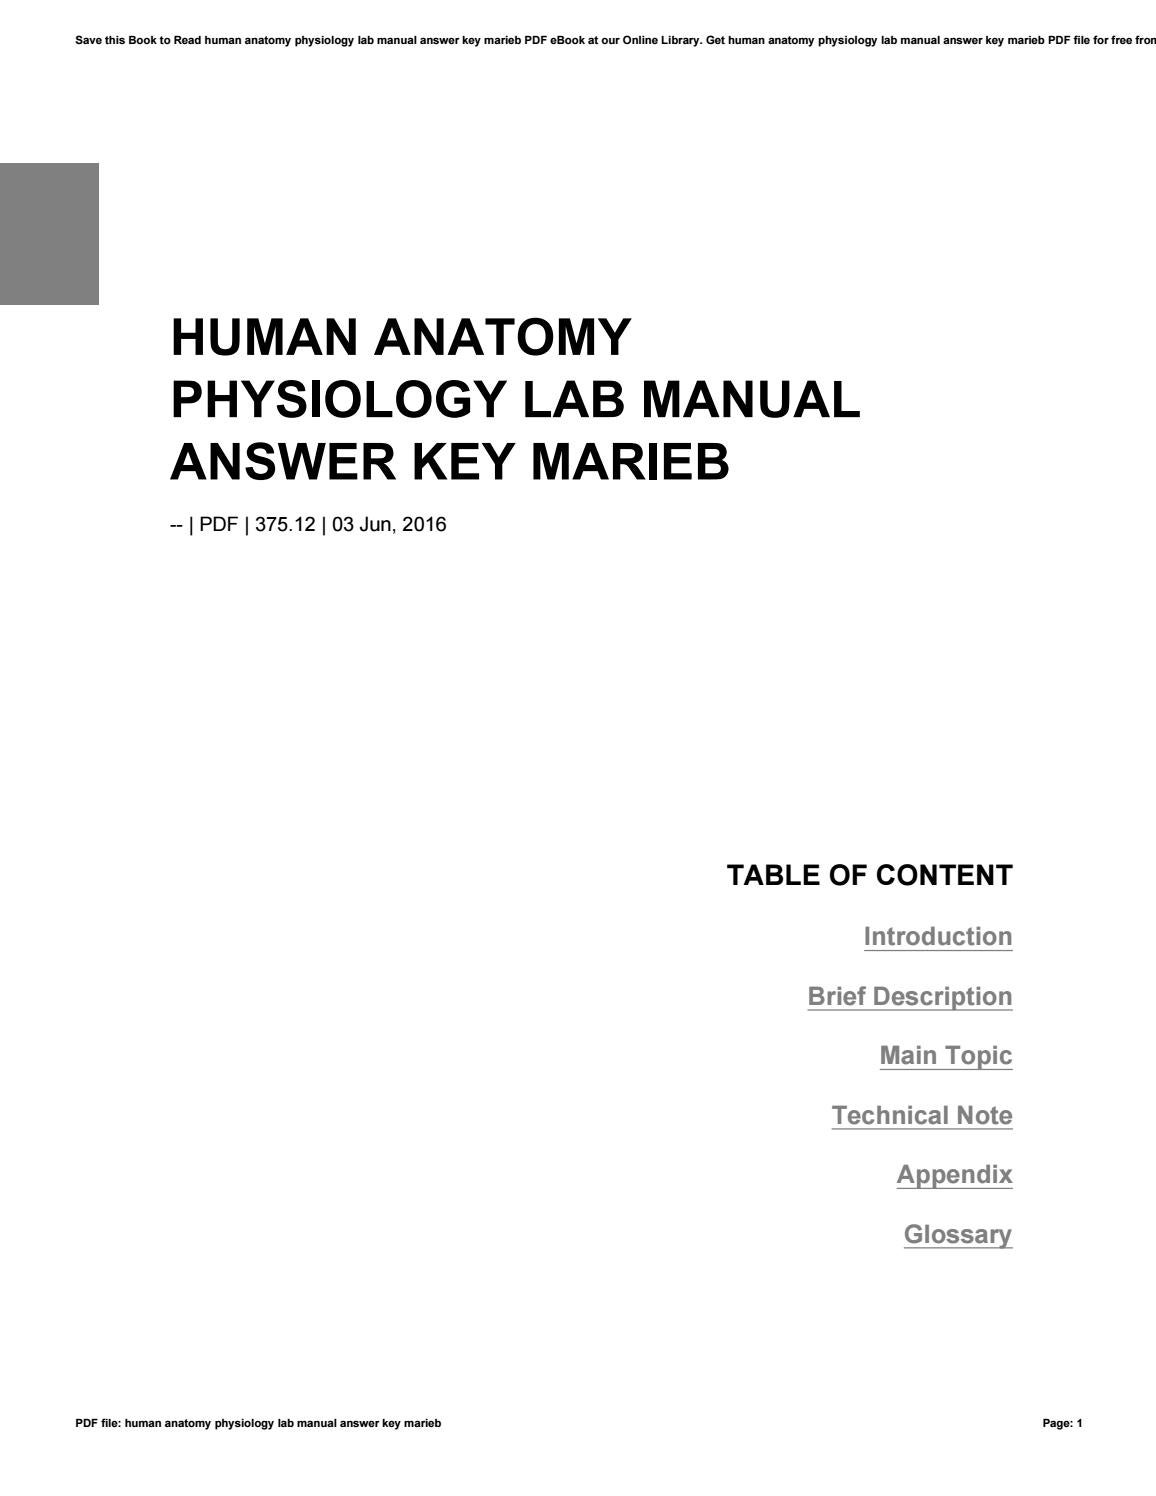 Human anatomy physiology lab manual answer key marieb by